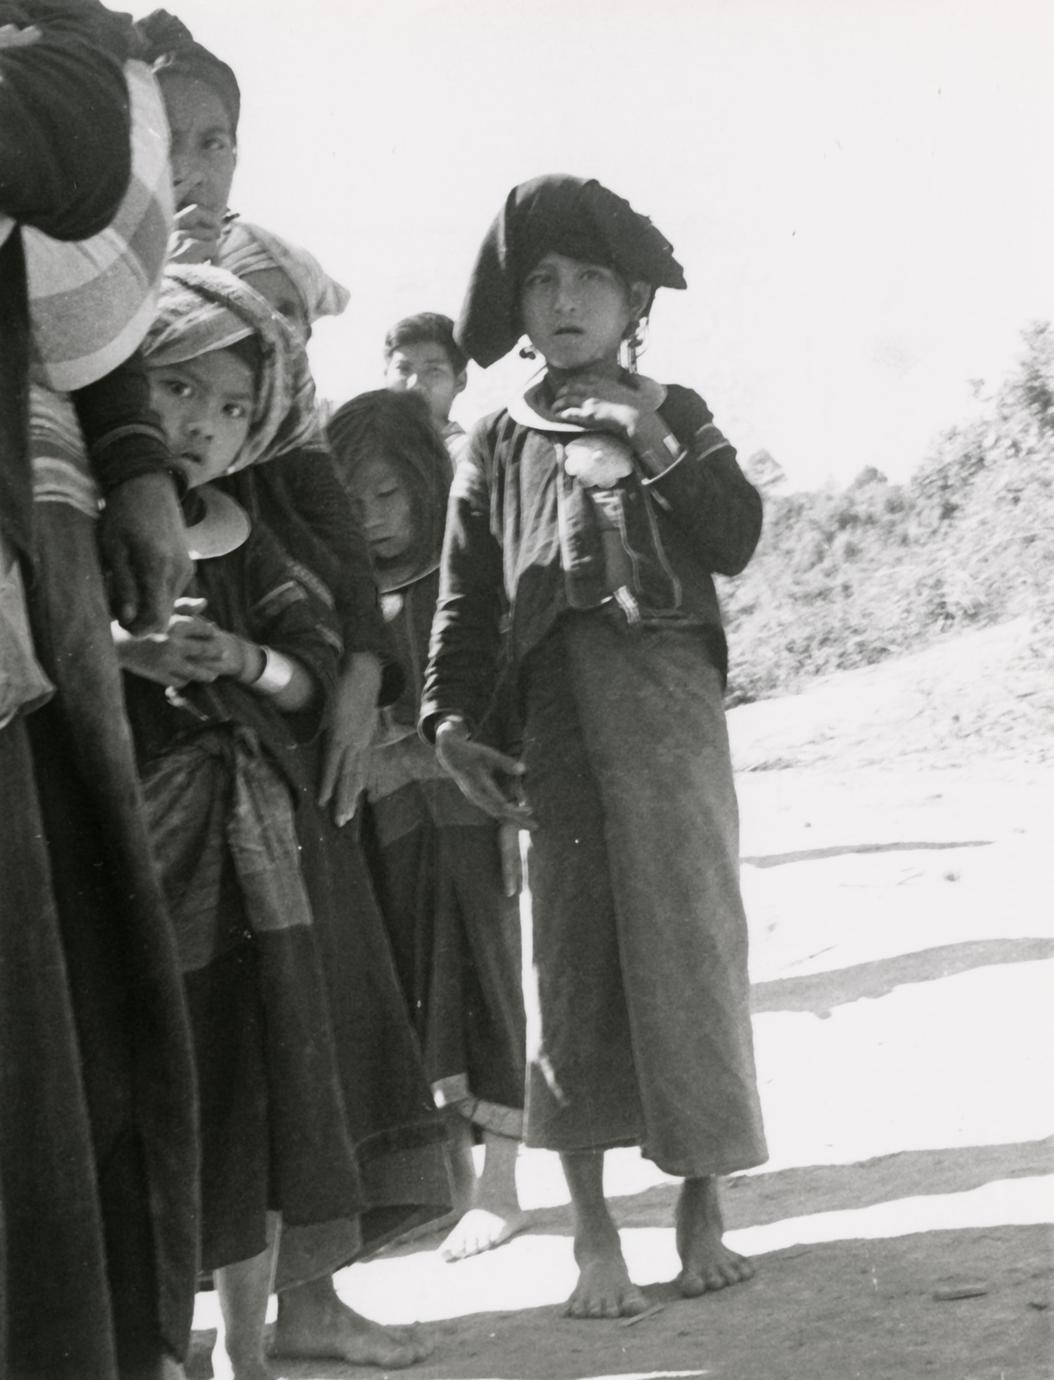 Young girls in a Black Lahu (Lahu Na) village pose for a photograph in Houa Khong Province